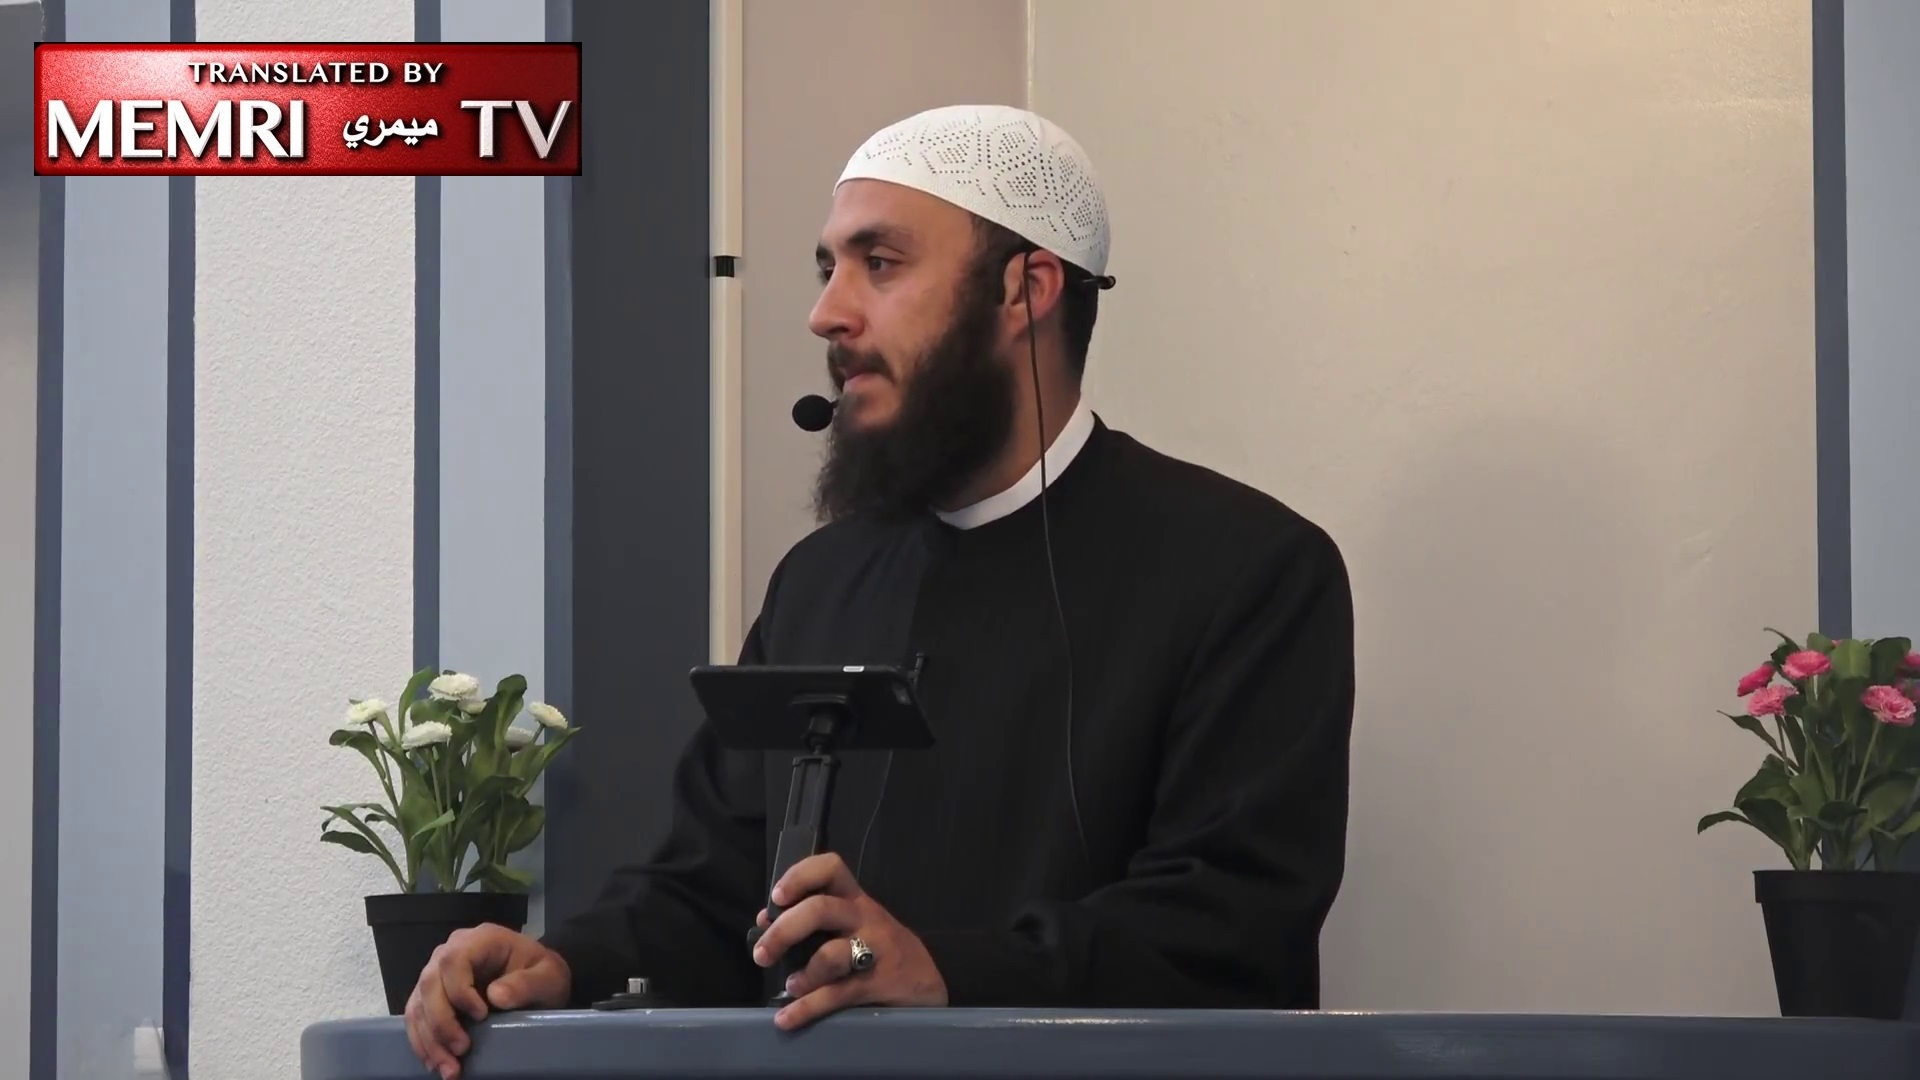 California Sermon: Imam Ammar Shahin Prays To Allah To Turn Jerusalem And Palestine Into A Graveyard For The Jews And Liberate The Al-Aqsa Mosque From 'Their Filth'